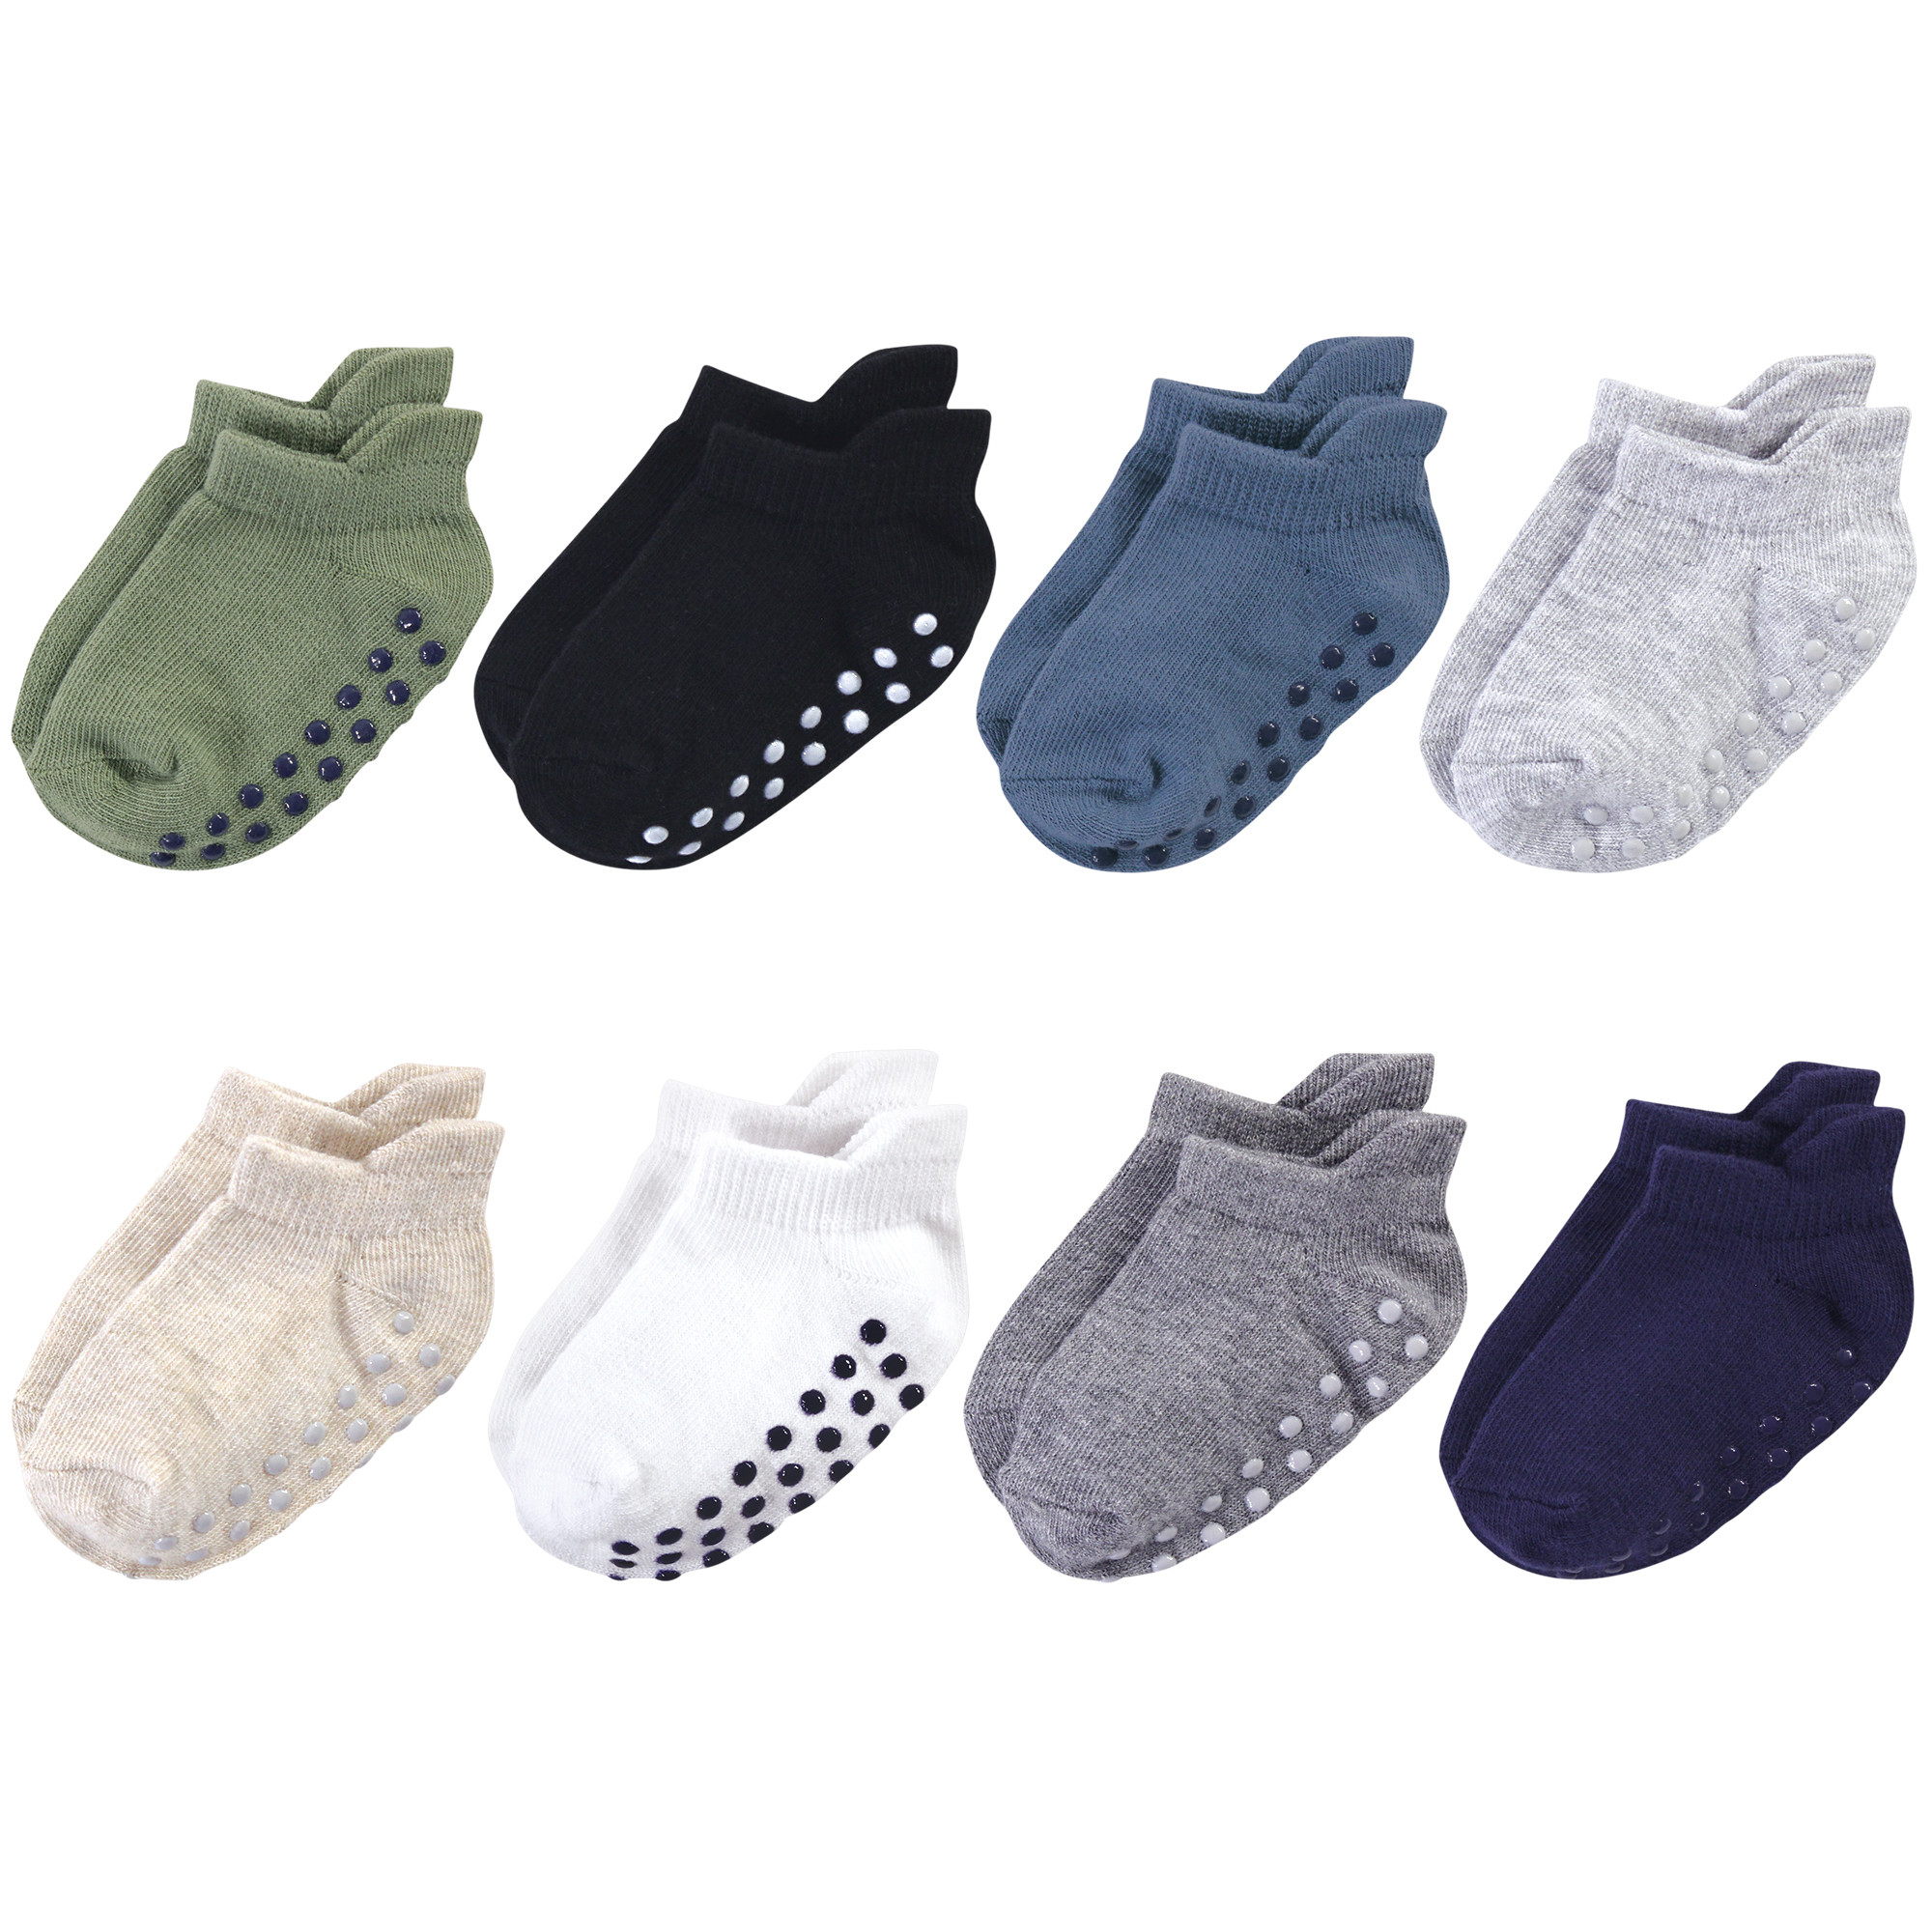 Touched by Nature Organic Cotton Socks with Non-Skid Gripper for Fall Resistance